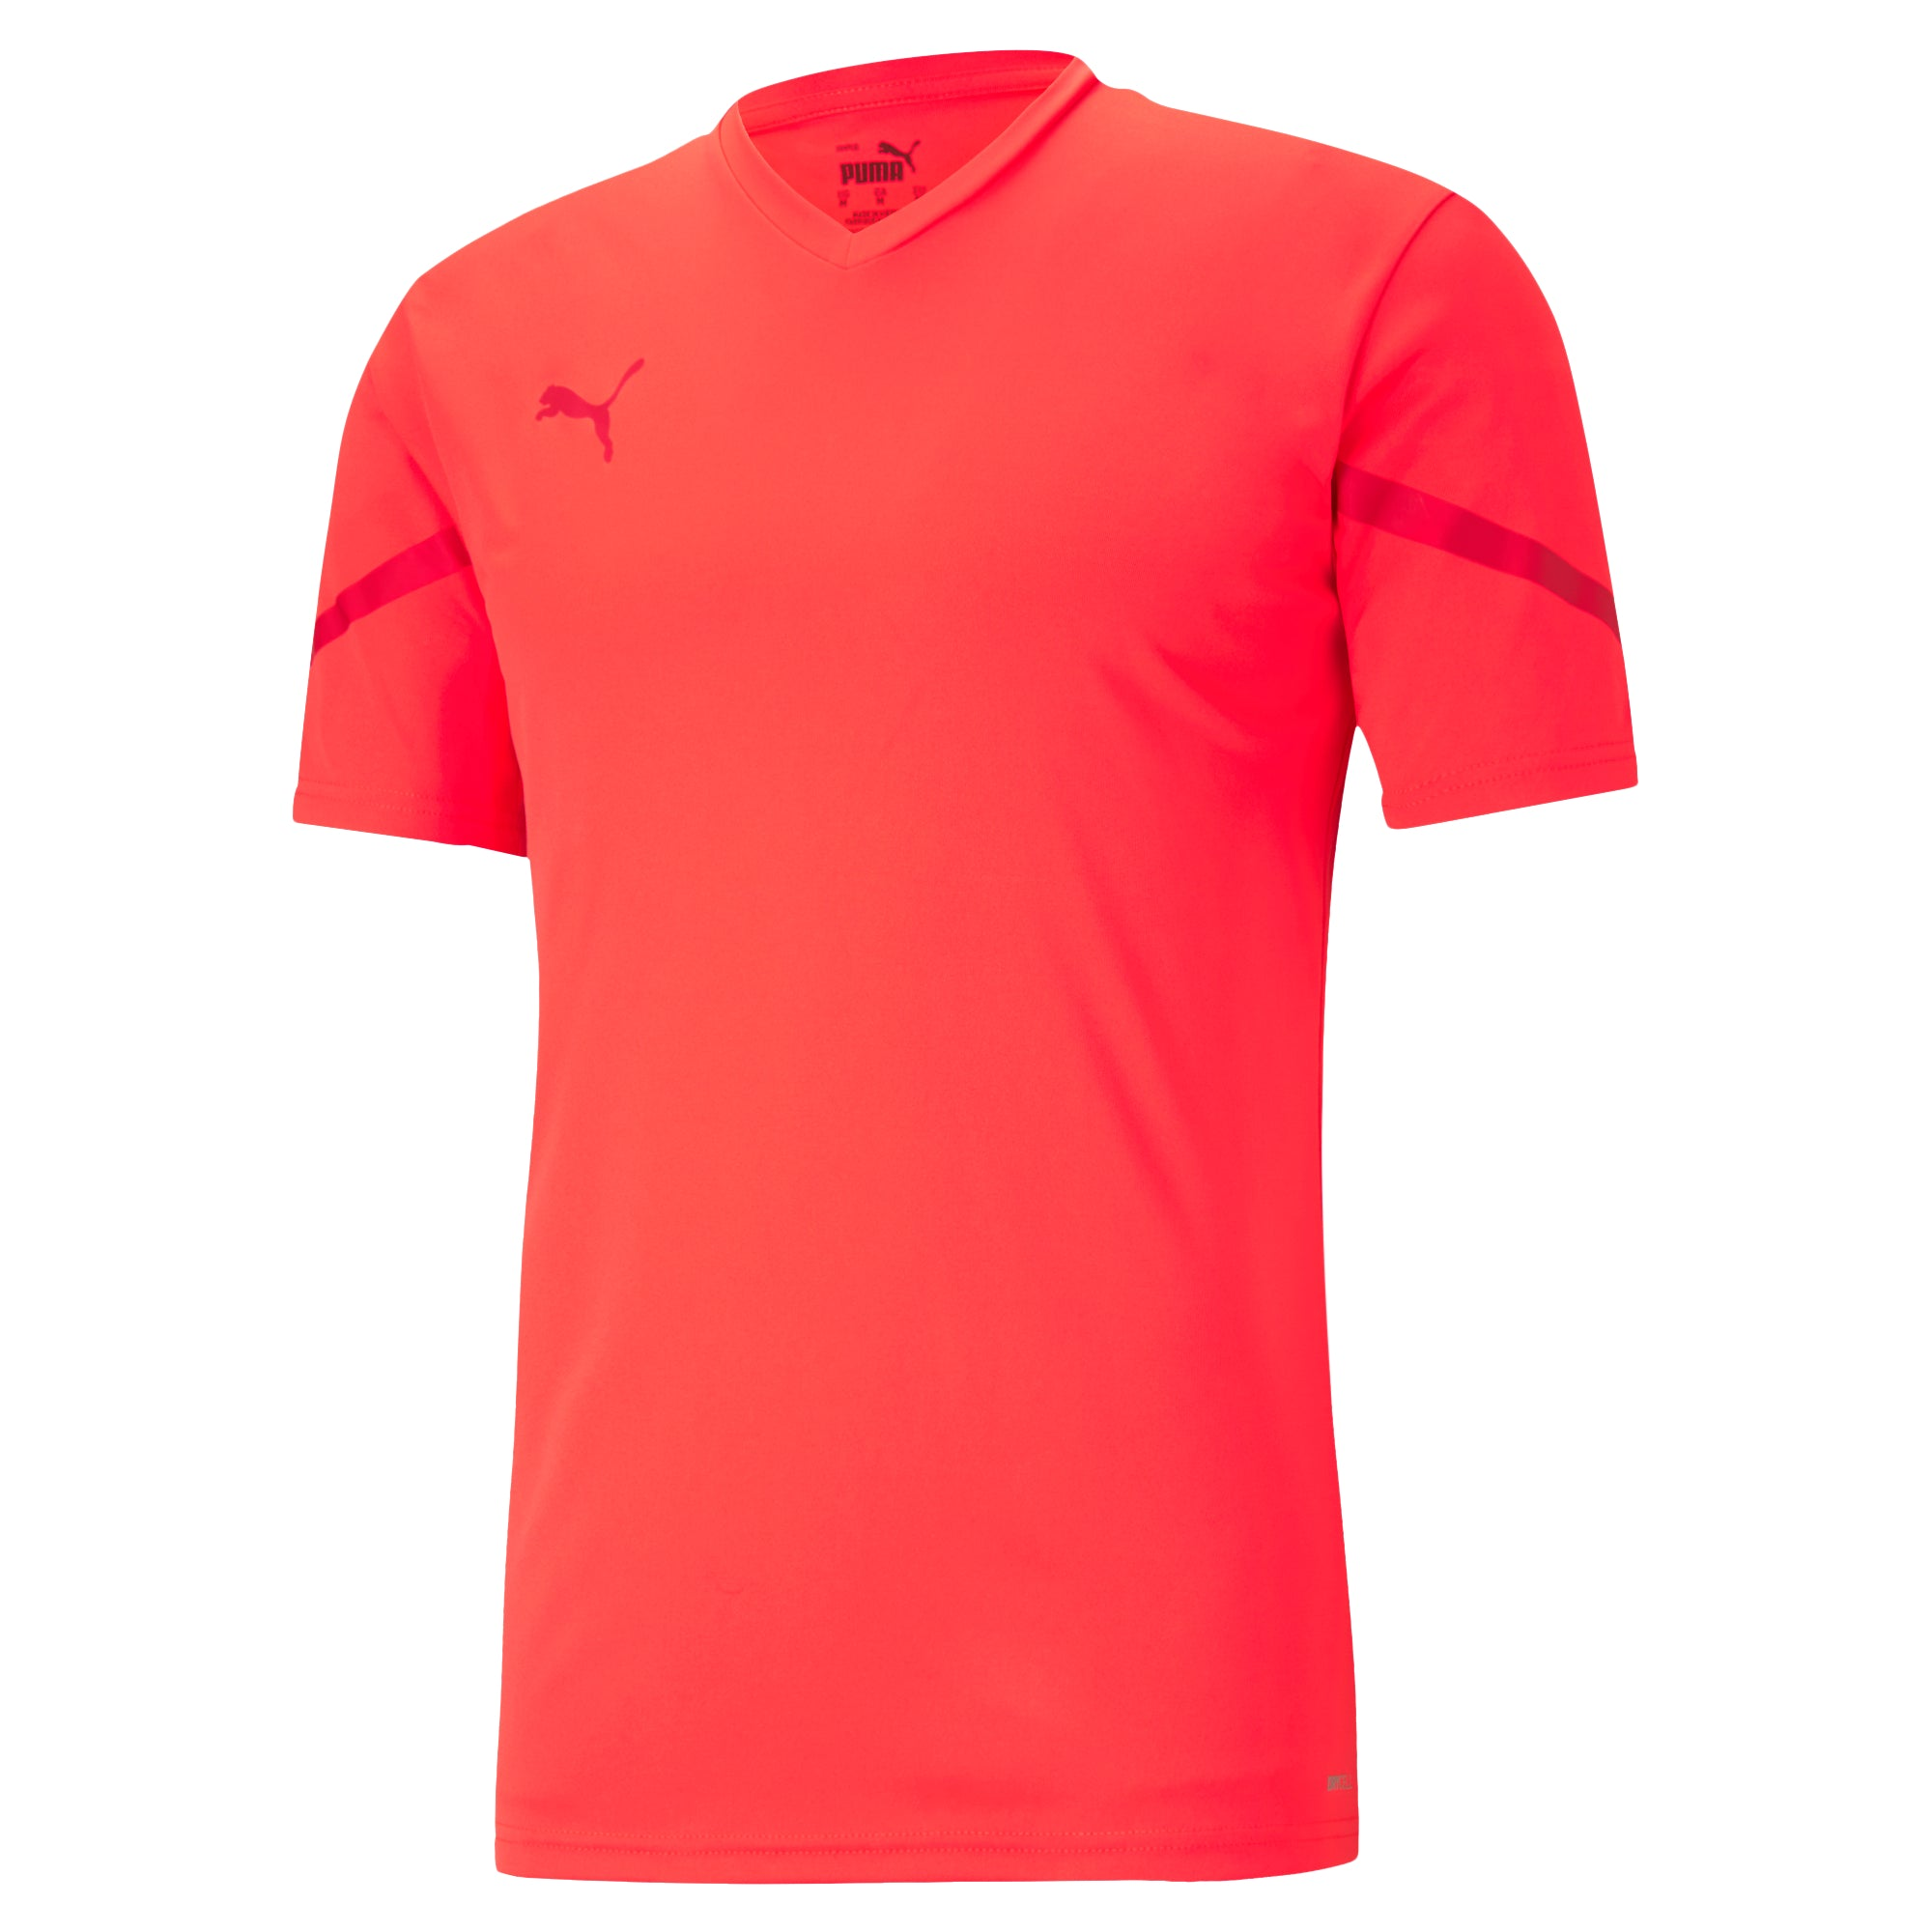 Puma Team Flash Jersey - Nrgy Red